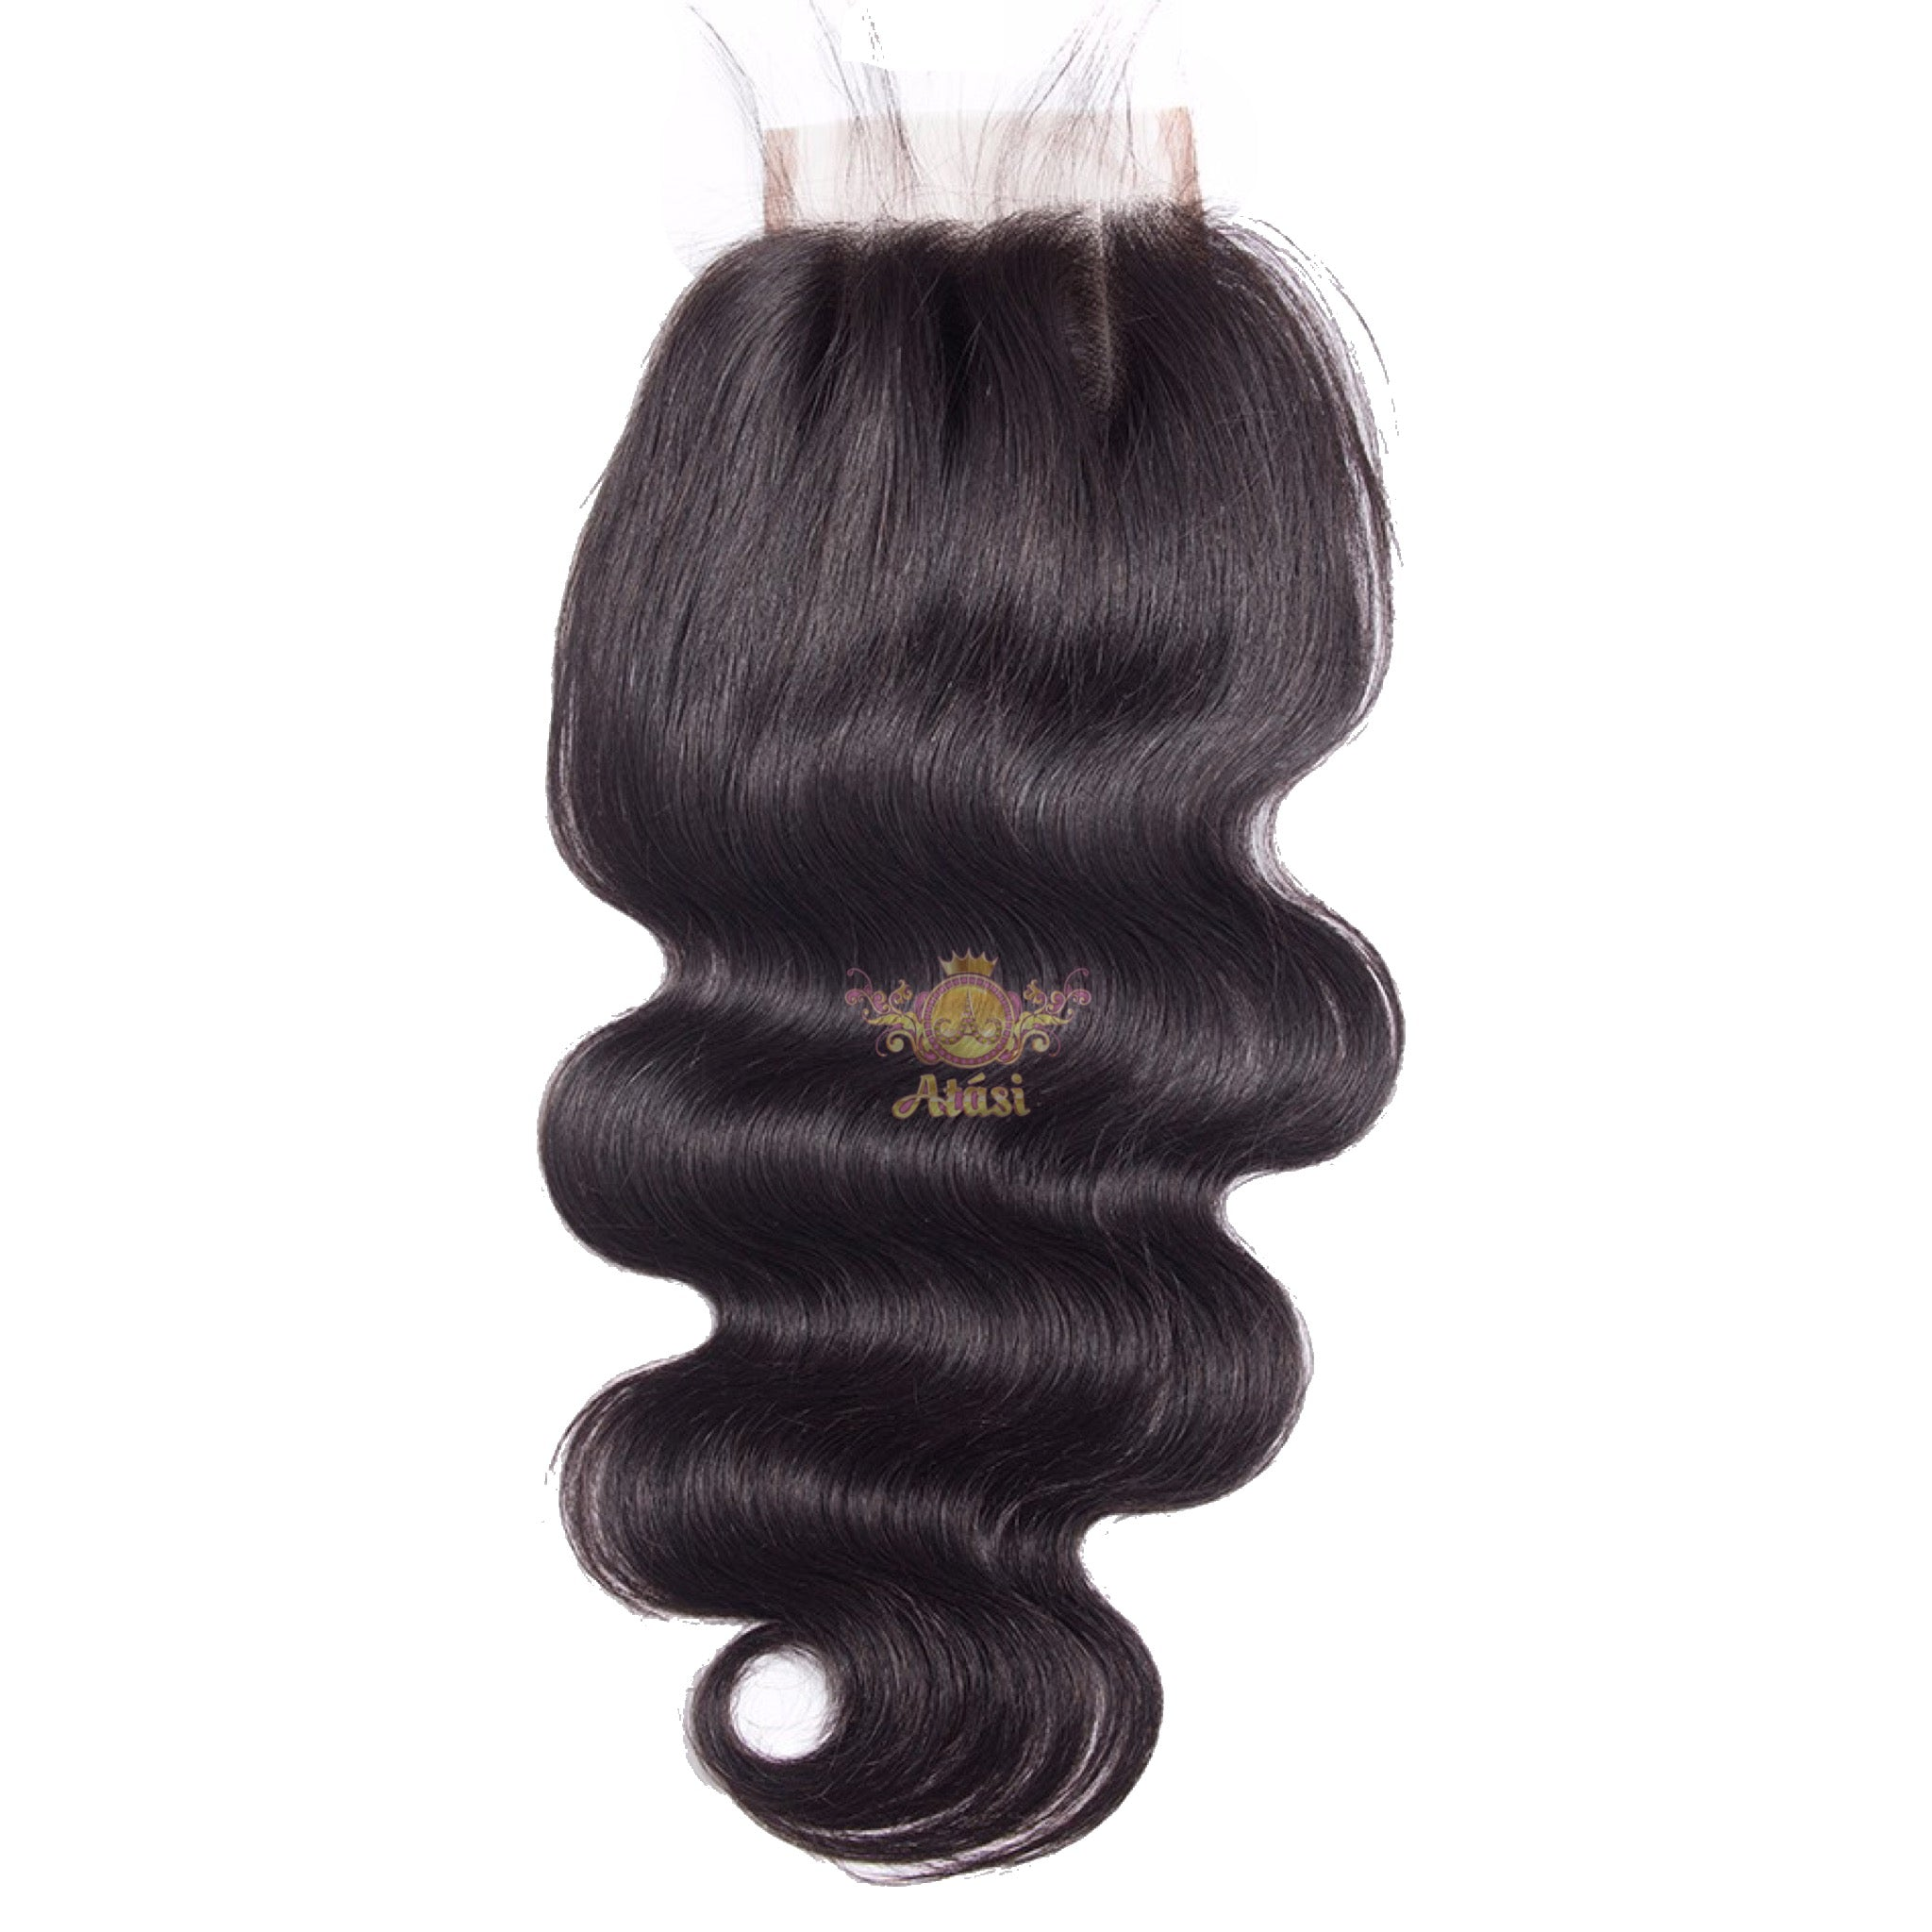 "100% Virgin hair body wave 4x4 lace Closure HD lace 8-24"" inches avail"